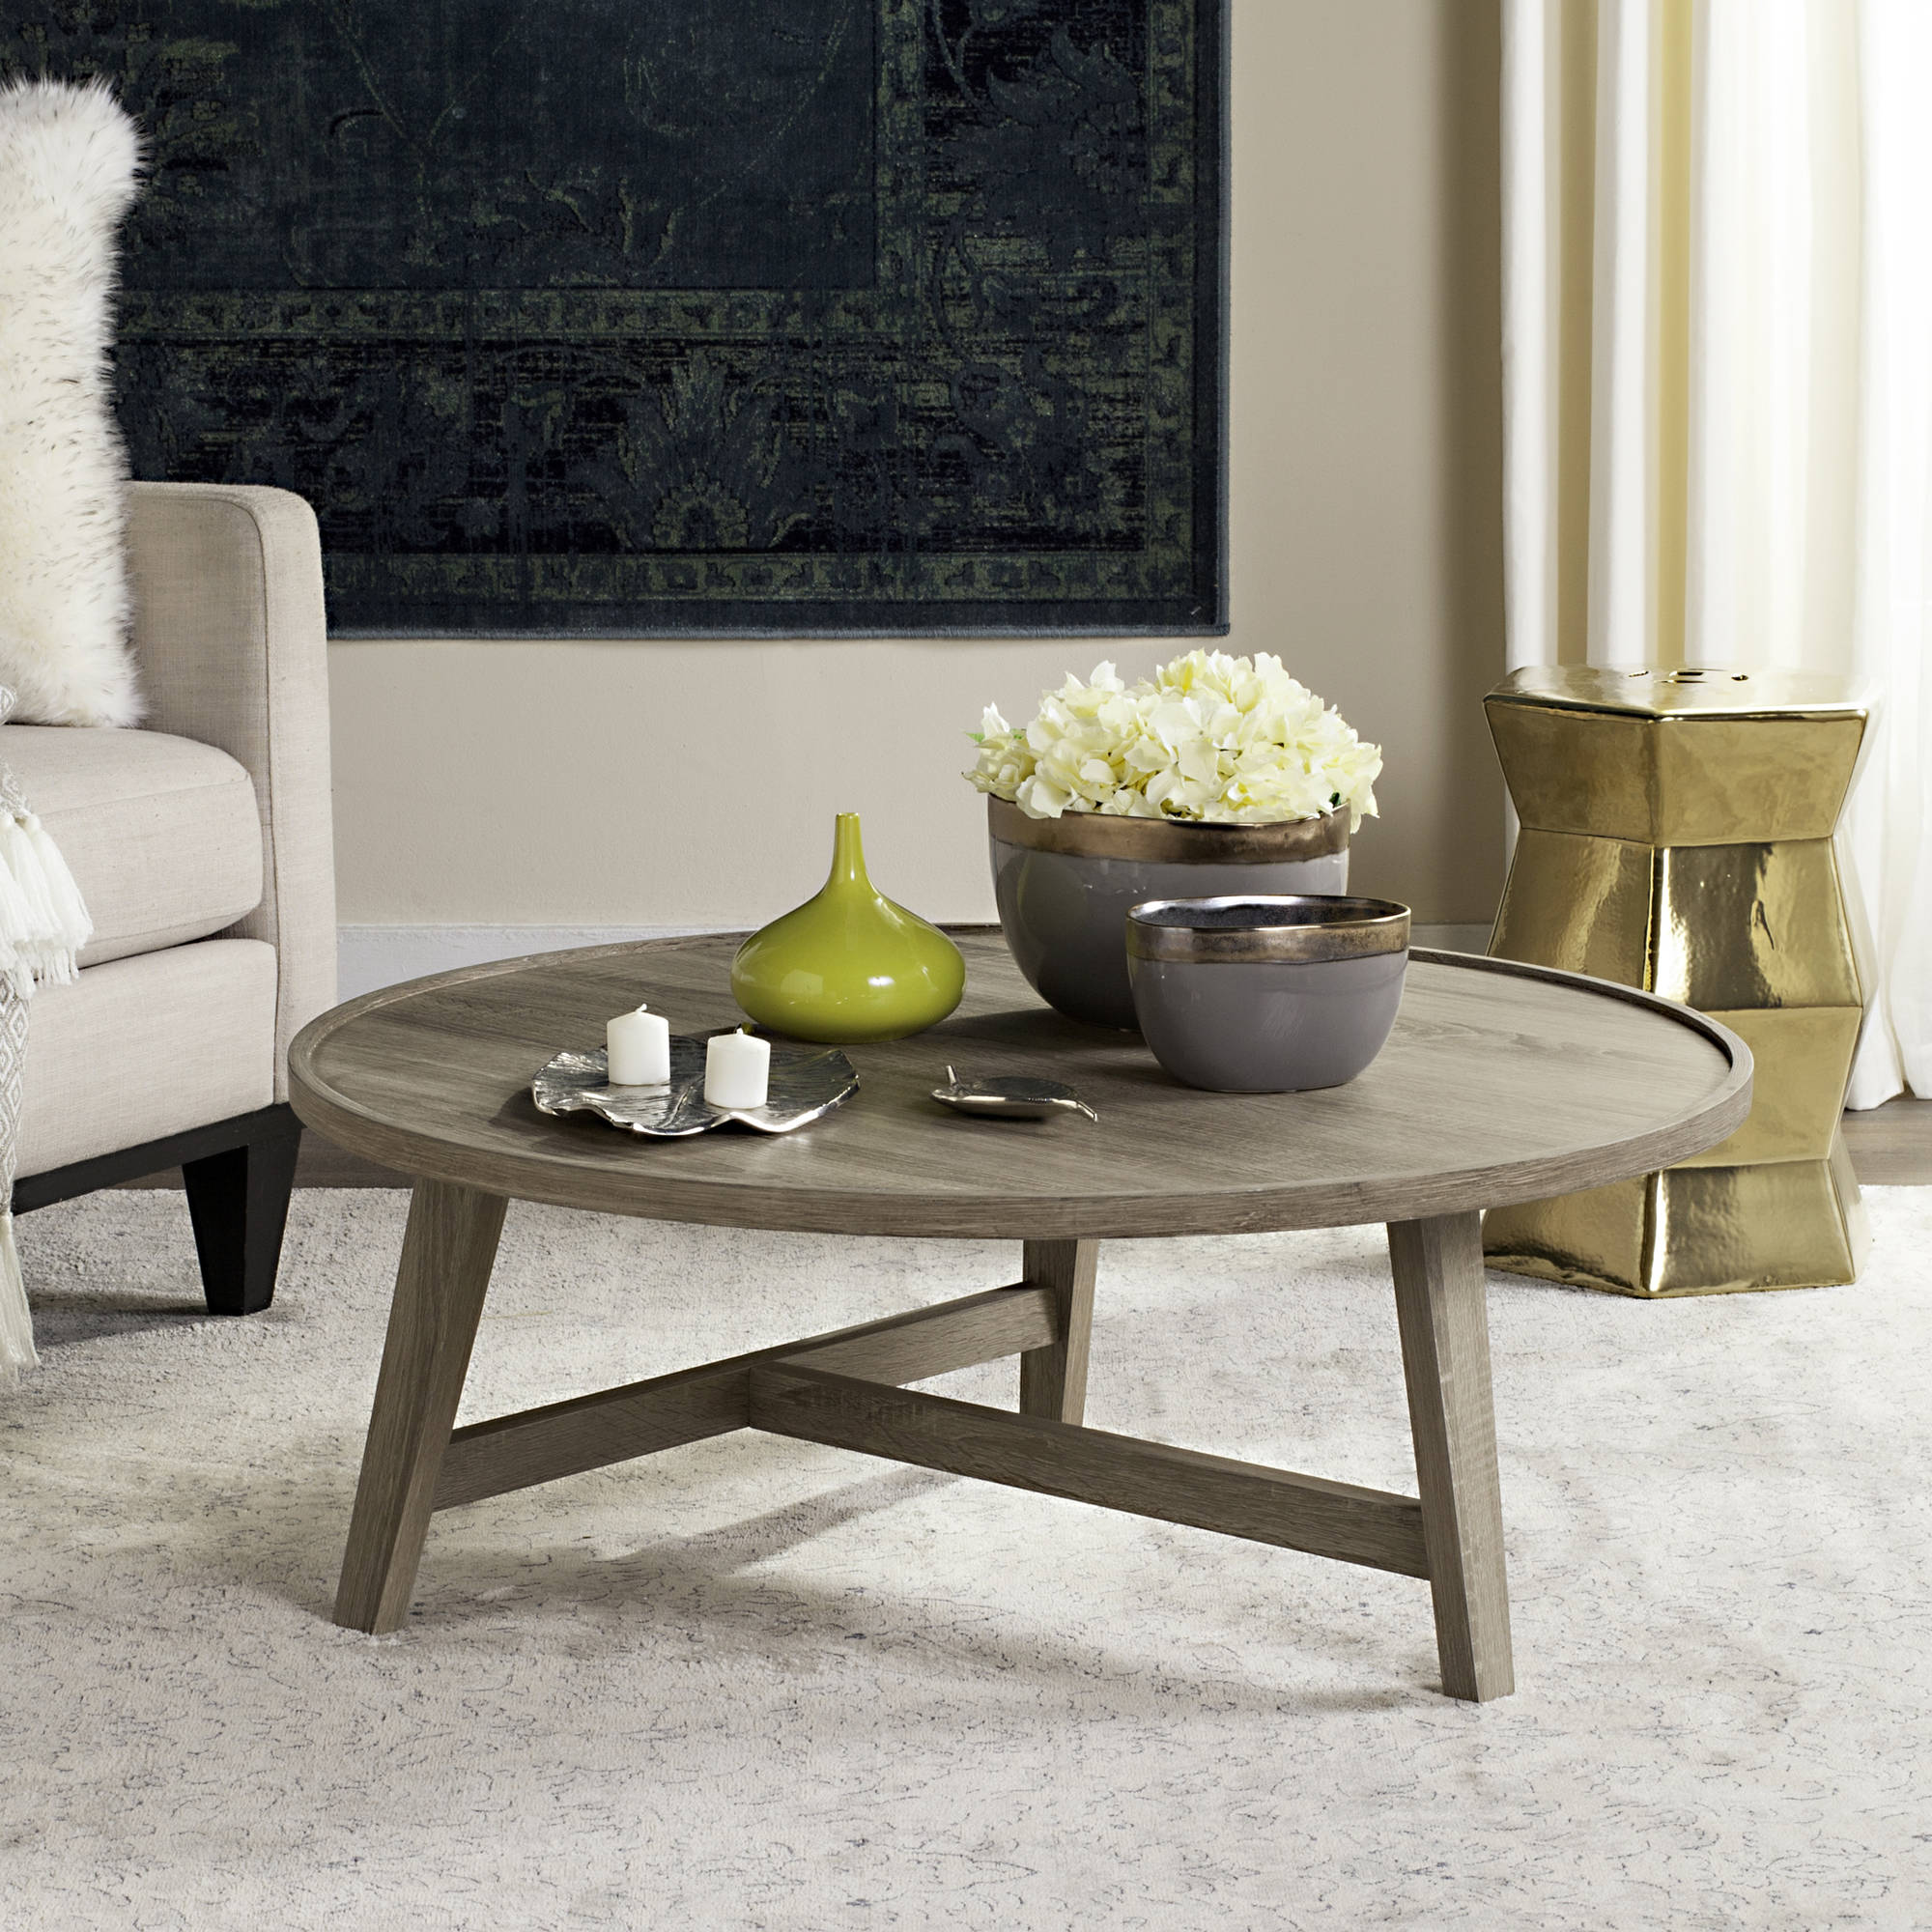 "Safavieh Malone 35"" Round Retro Mid Century Coffee Table, Multiple Colors"